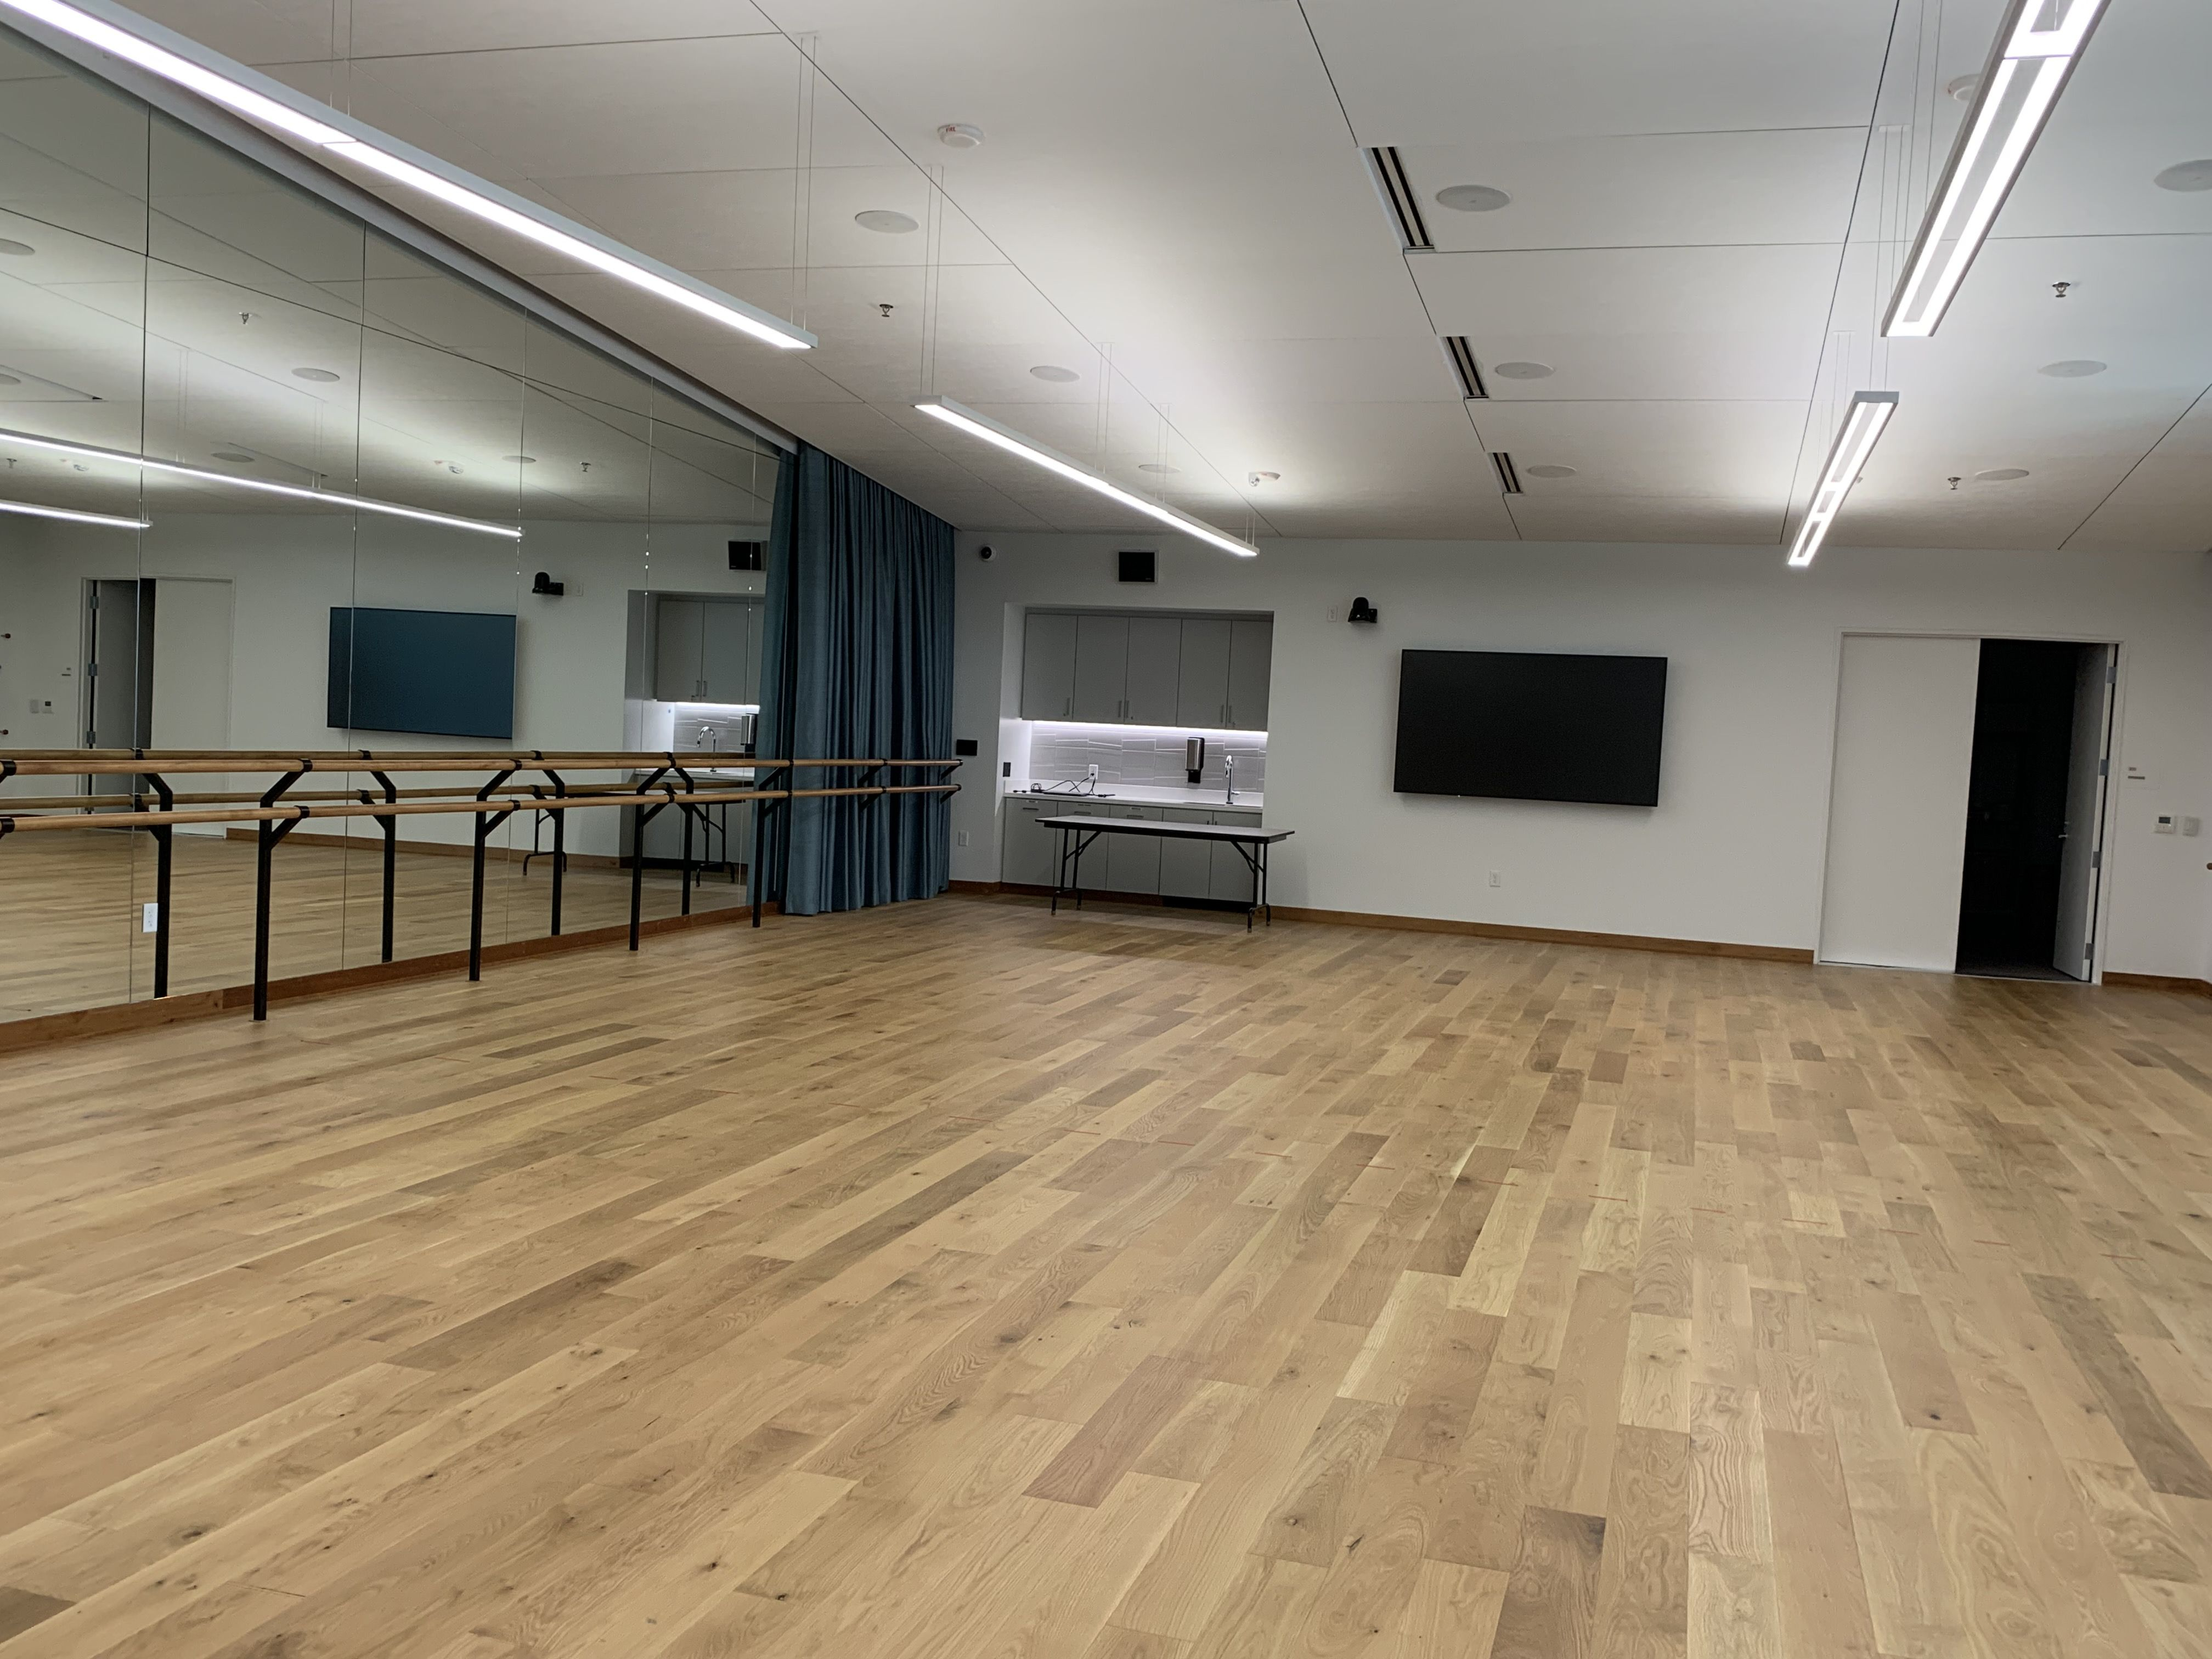 A photo of a dance studio at the Fayetteville library.